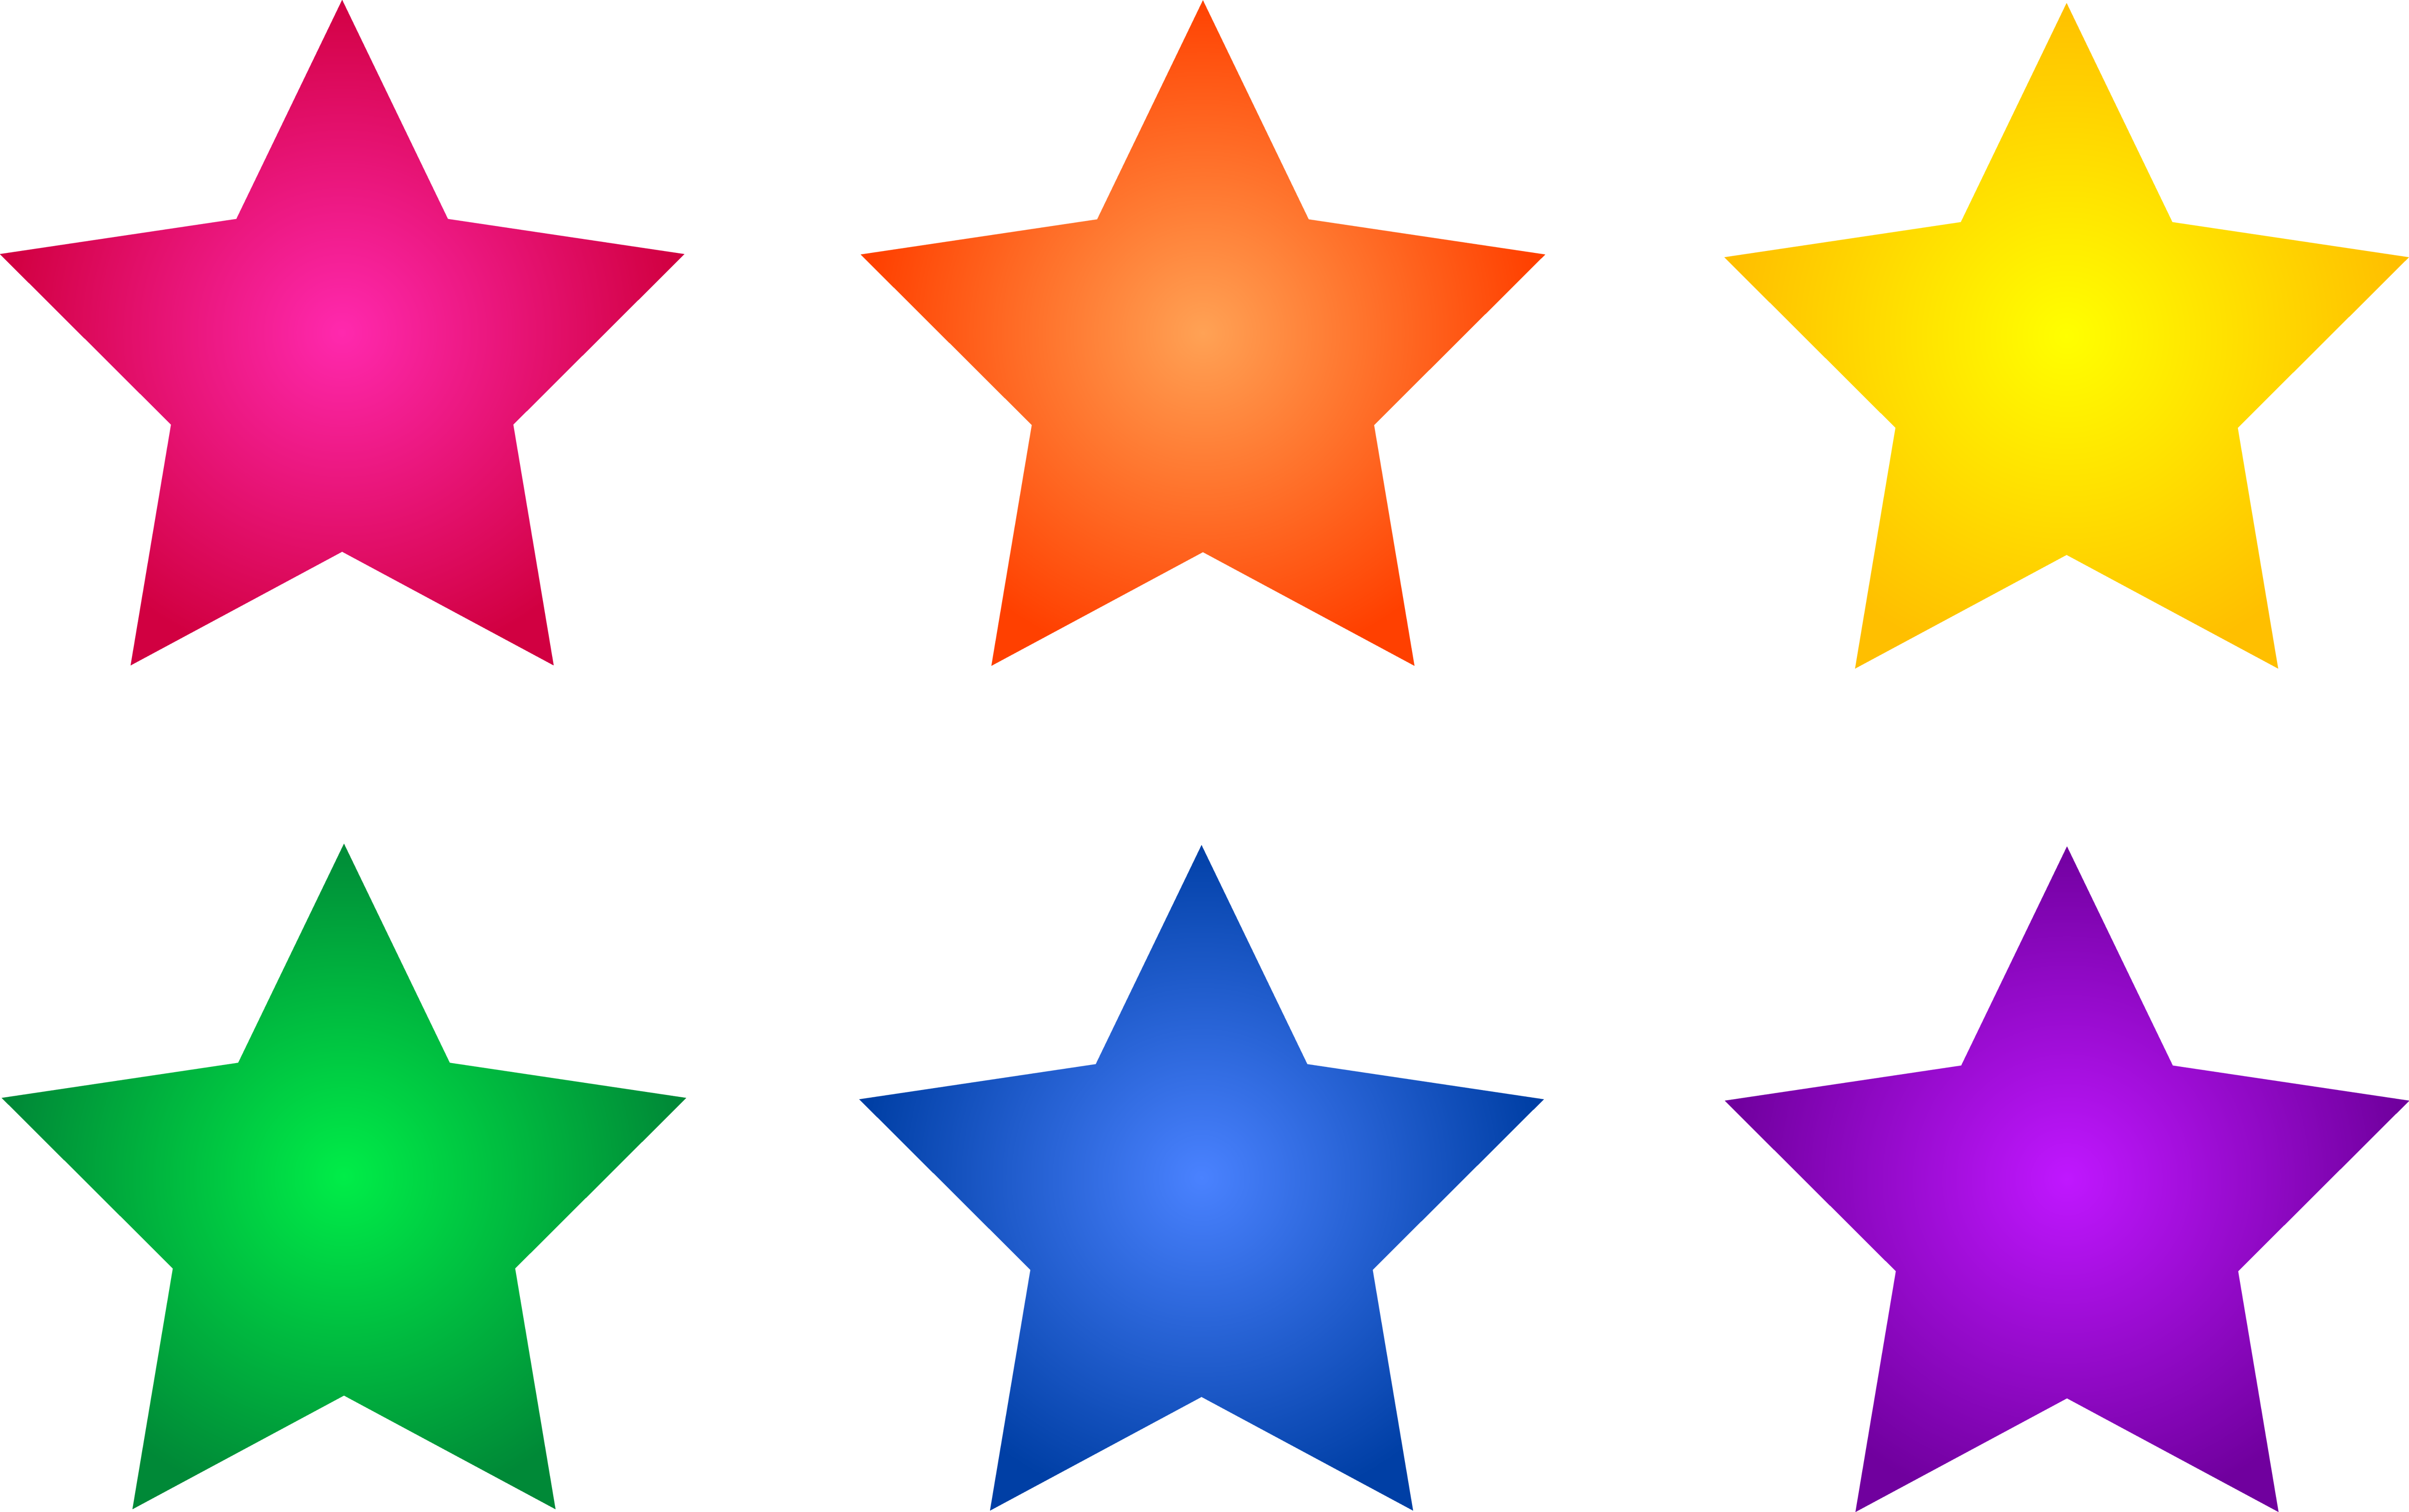 50 free star clipart images . Free cliparts that you can download to ...